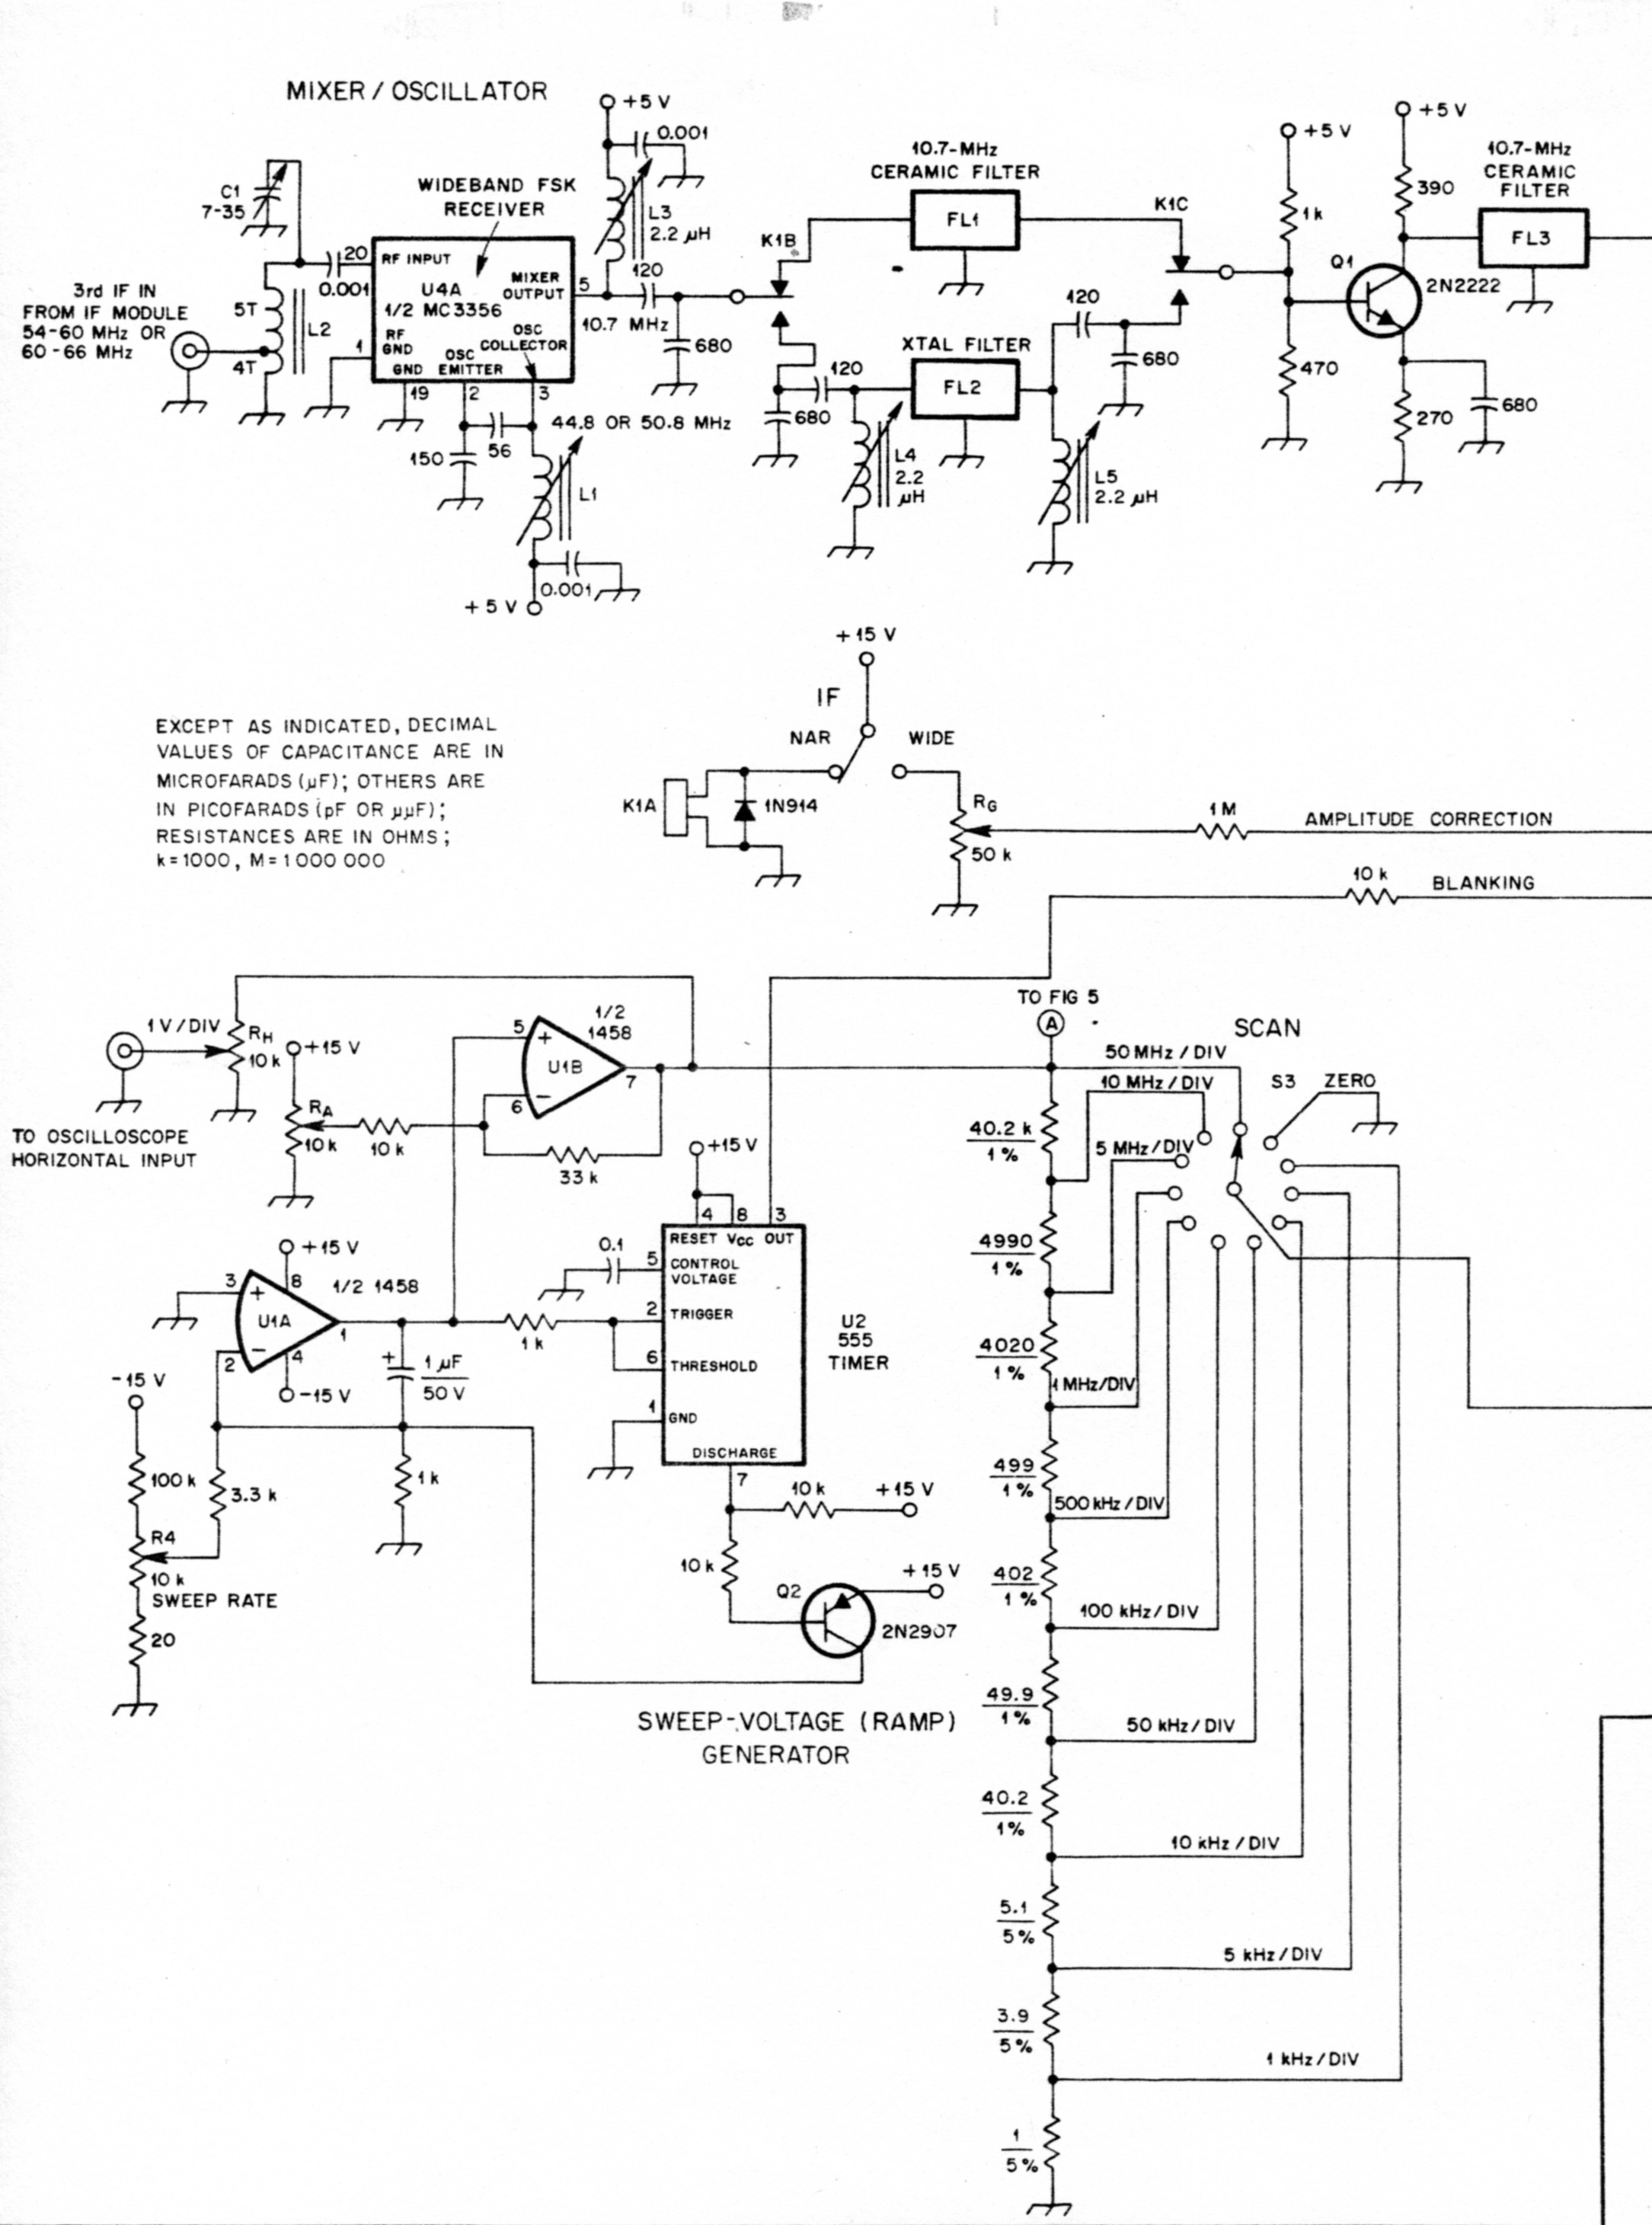 An Inexpensive Spectrum Analyzer For The Radio Amateur. 4 Schematic Diagram Of The Main Portion Homemade Spectrum Analyzer. Wiring. Spectrum Dc Drive Wiring Diagram At Scoala.co